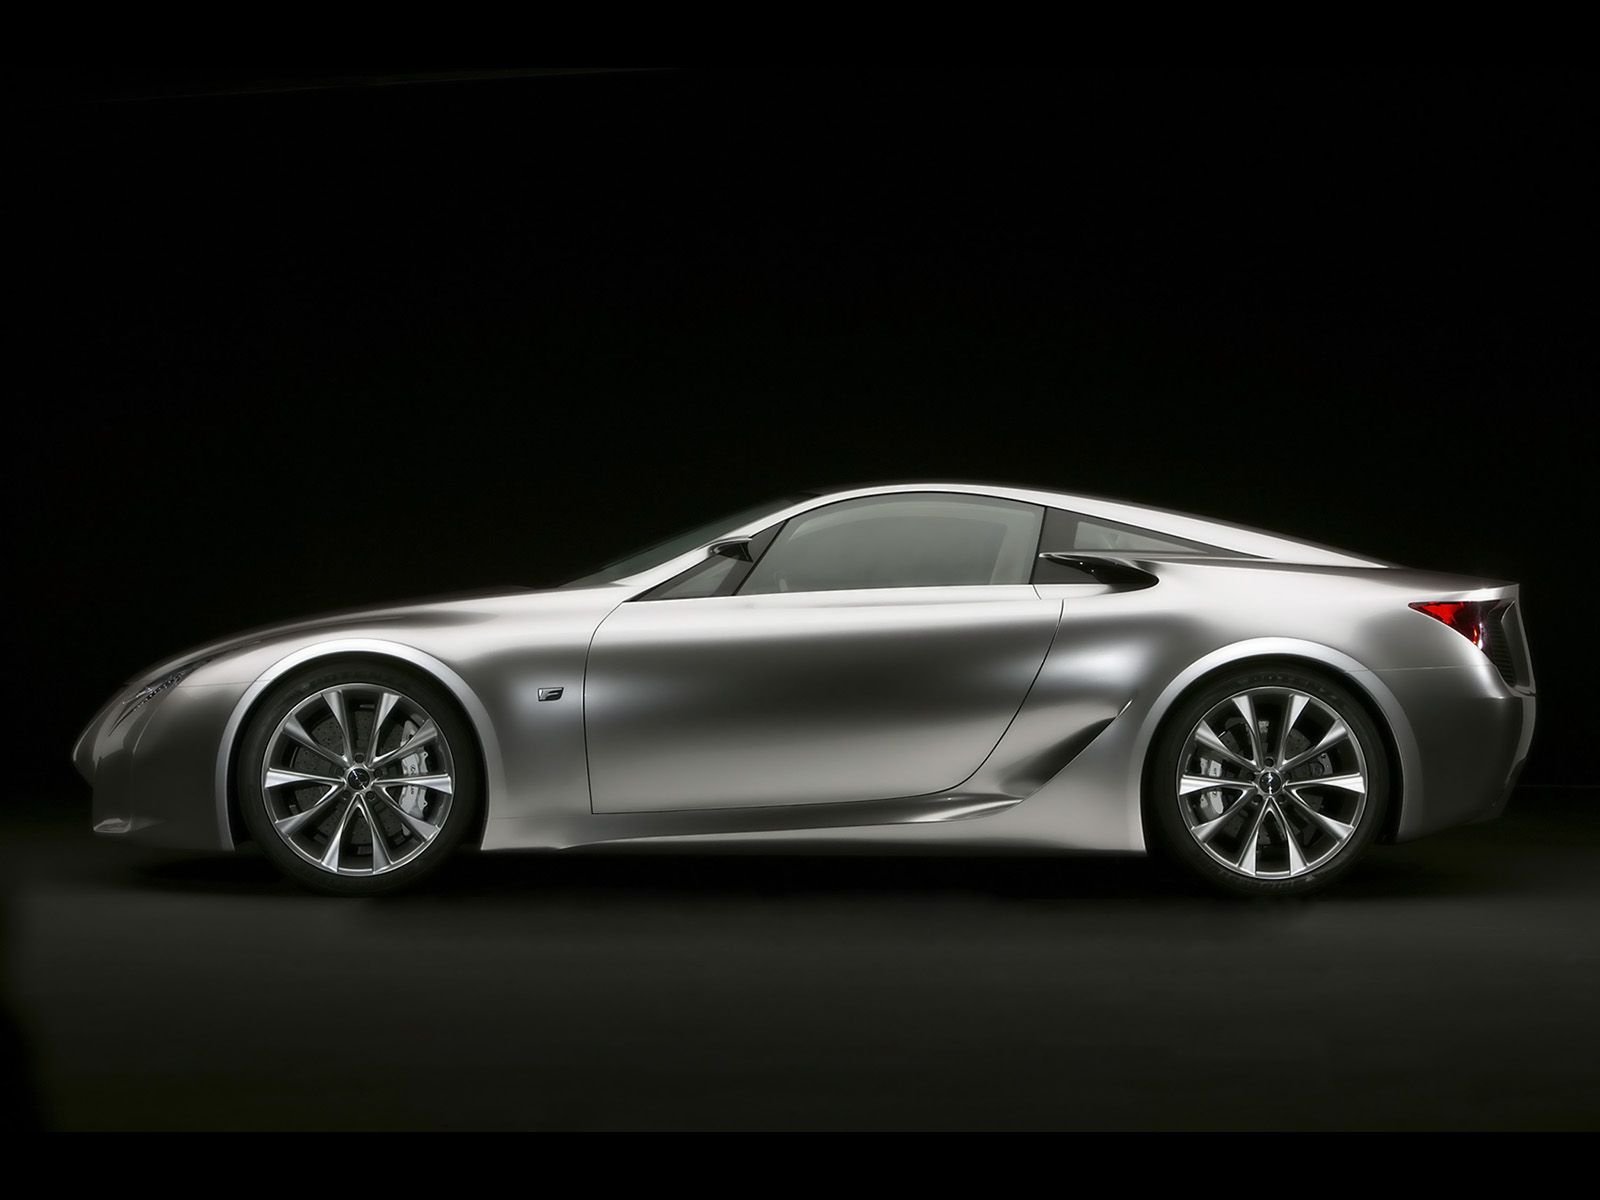 Wonderful 2007 Lexus LF A Sports Car Concept   Side   1600x1200   Wallpaper